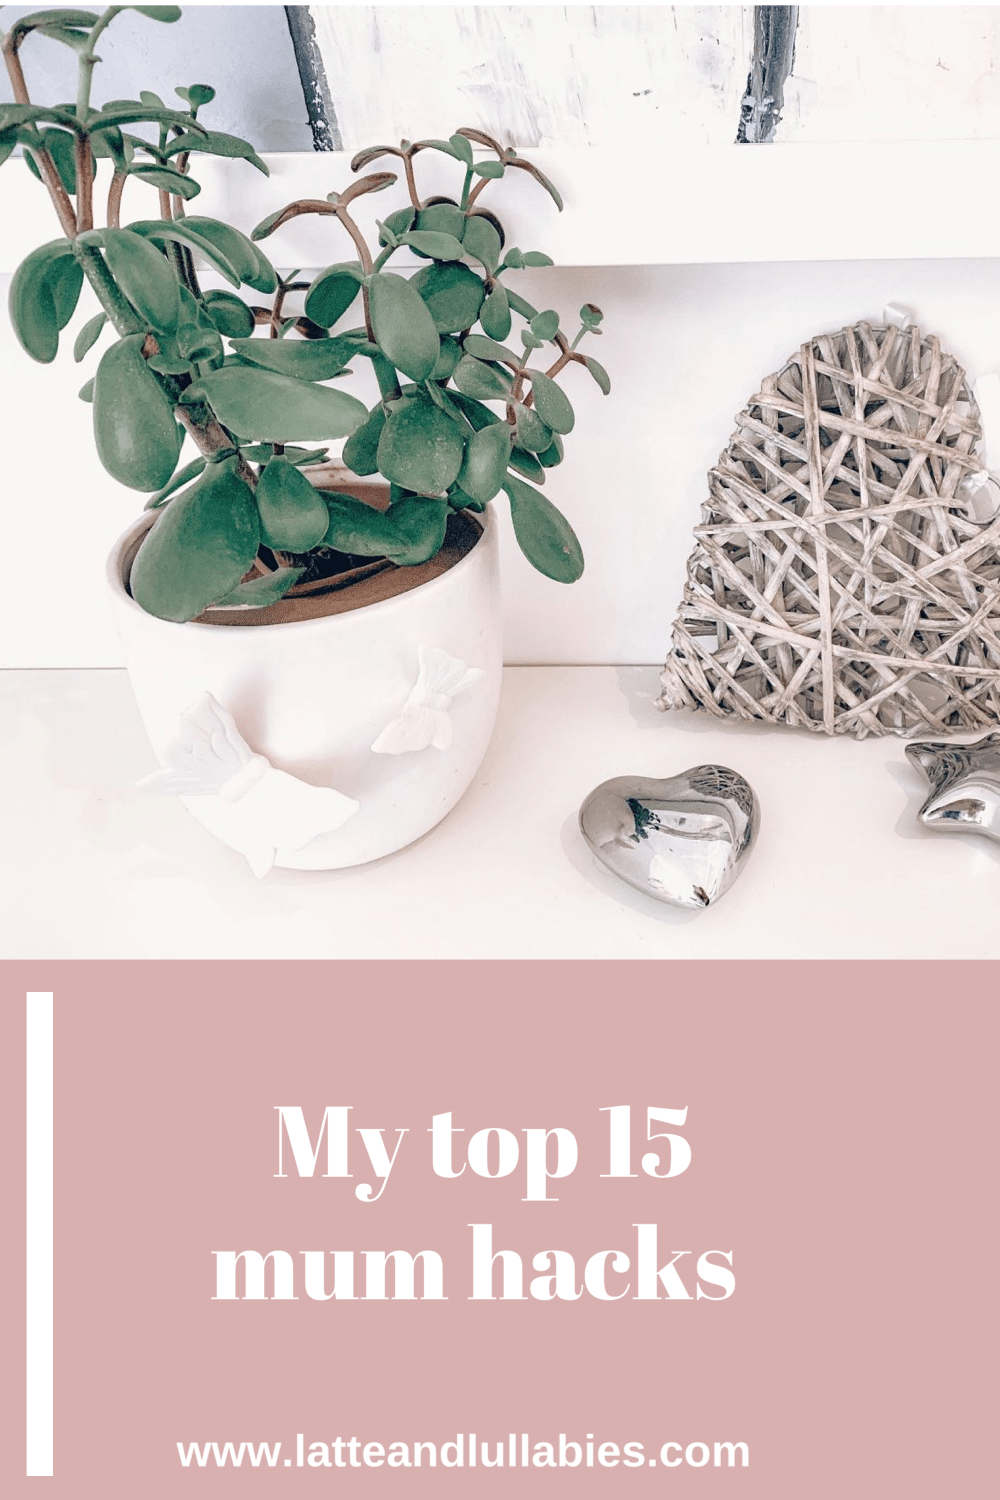 My top 15 mum hacks